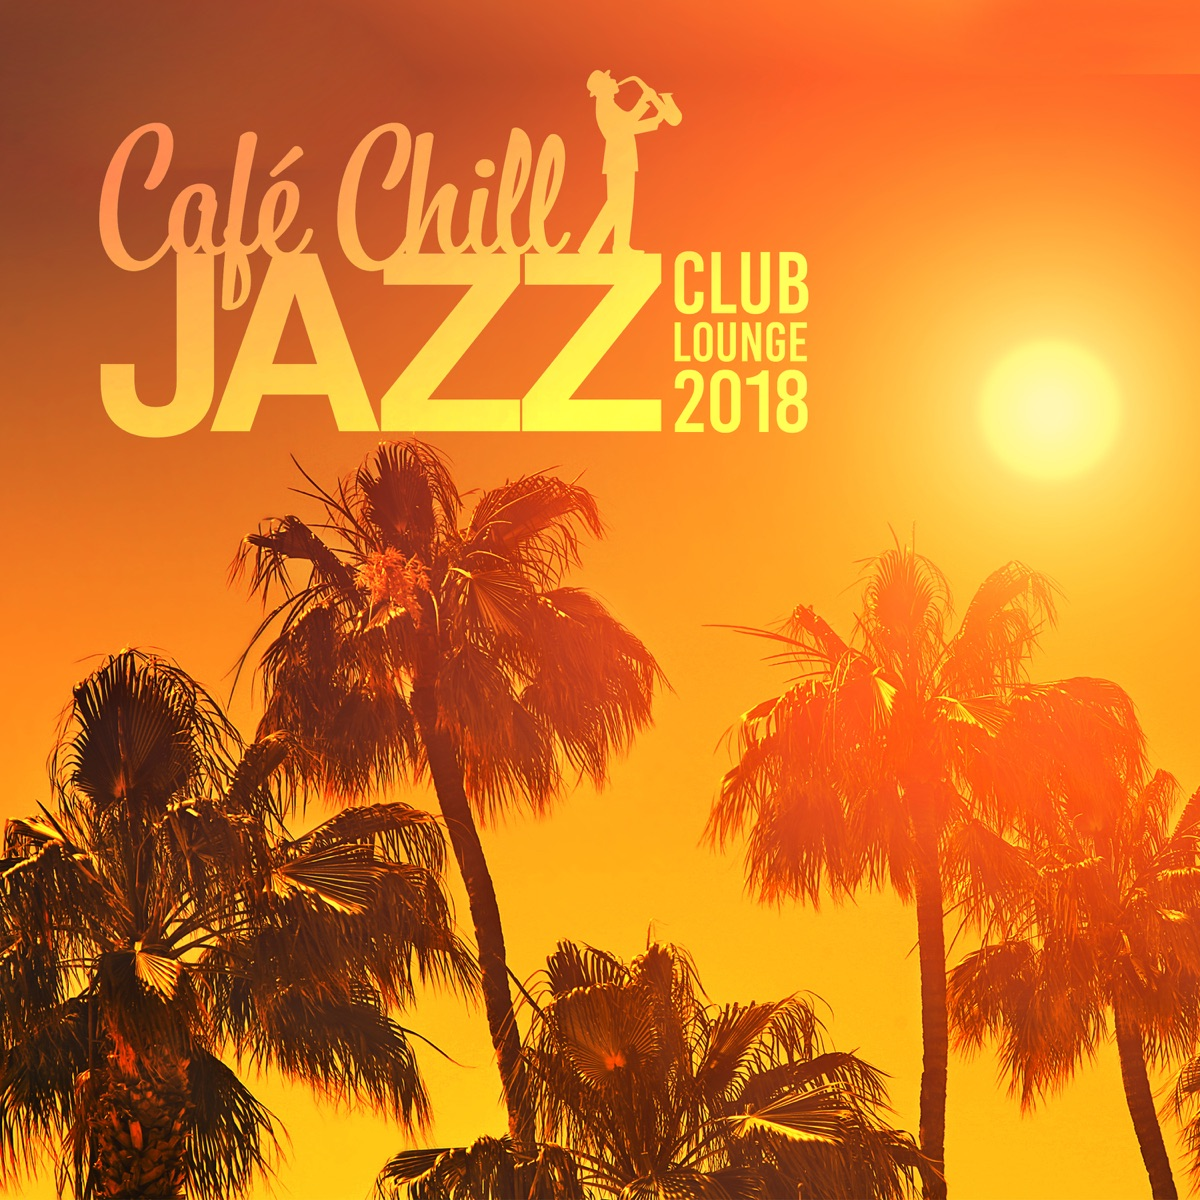 Café Chill Jazz: Club Lounge 2018, Opening Party, 31 Best